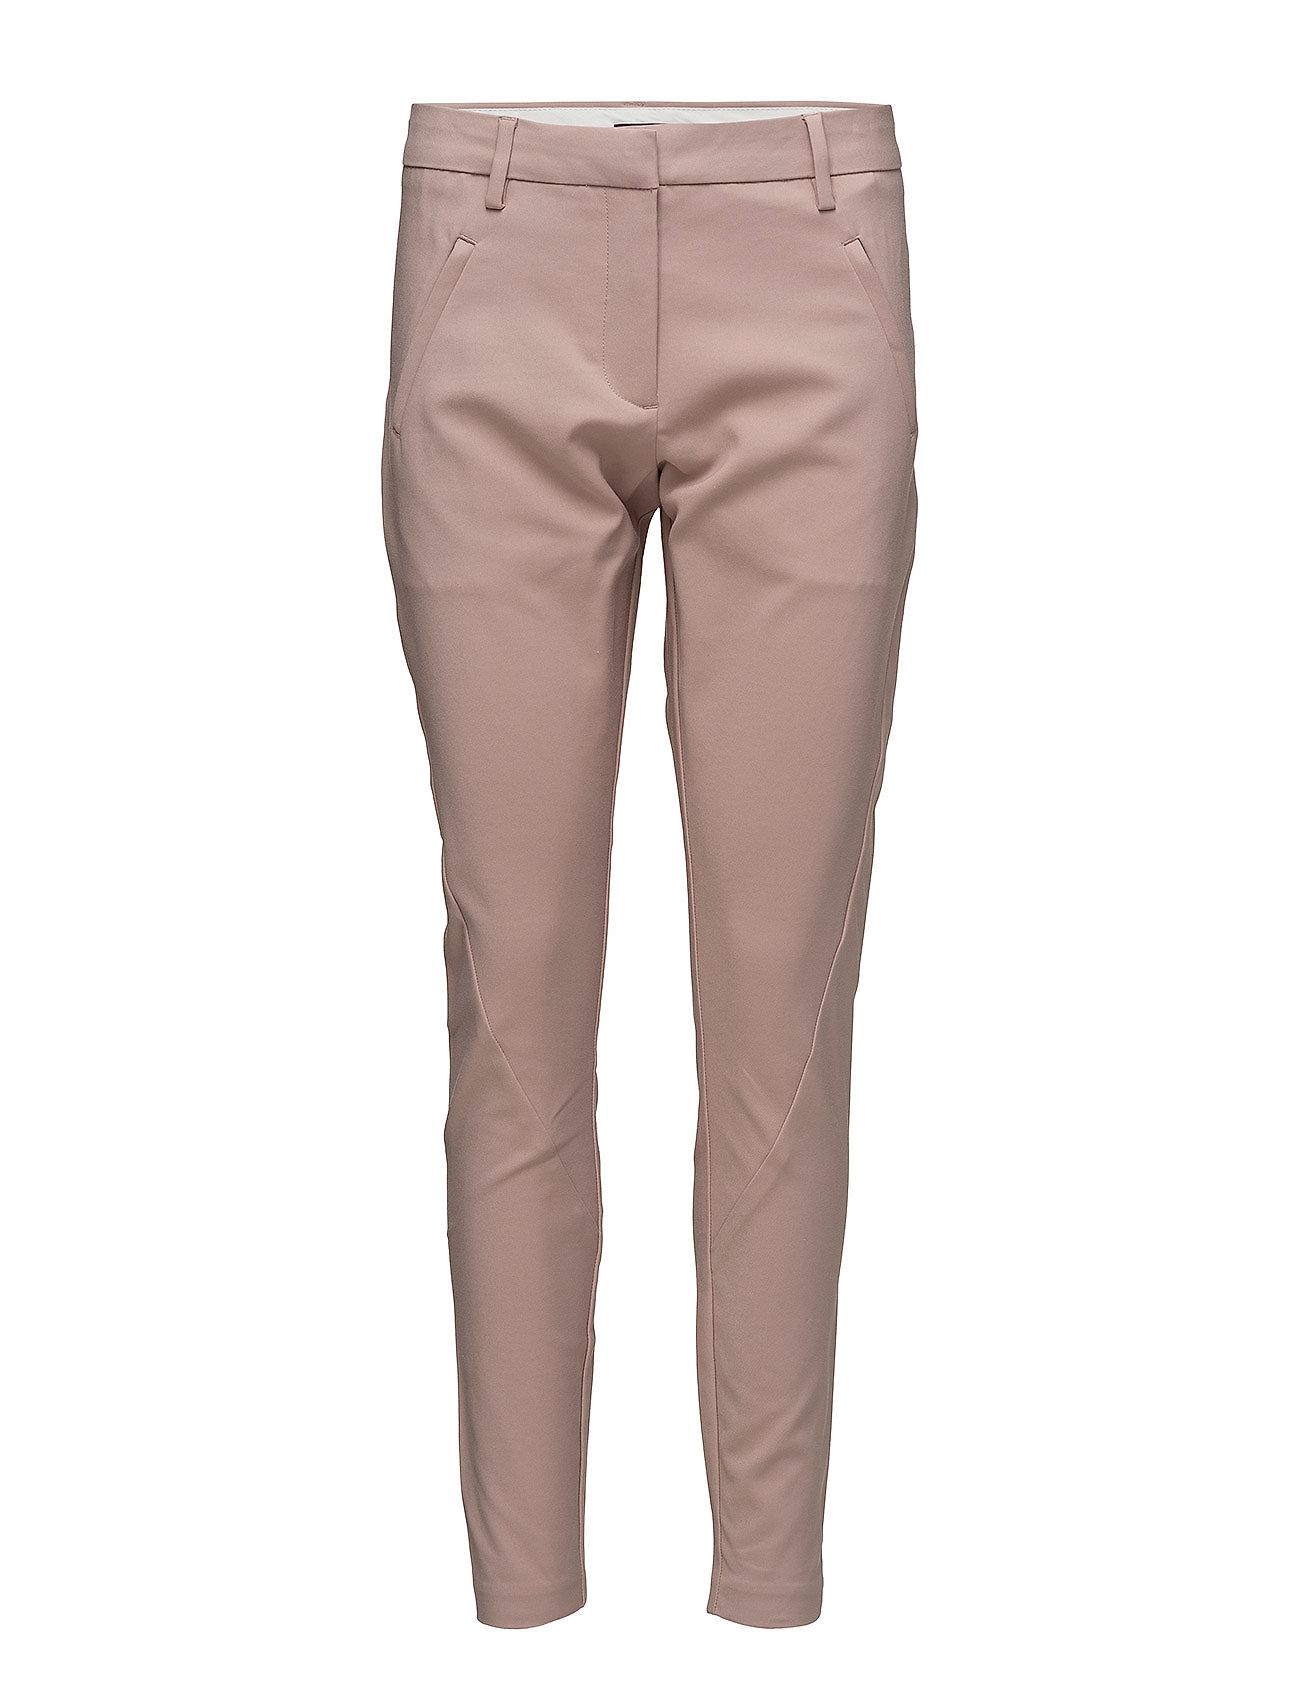 FIVEUNITS Angelie 238 Fawn Jeggin, Pants